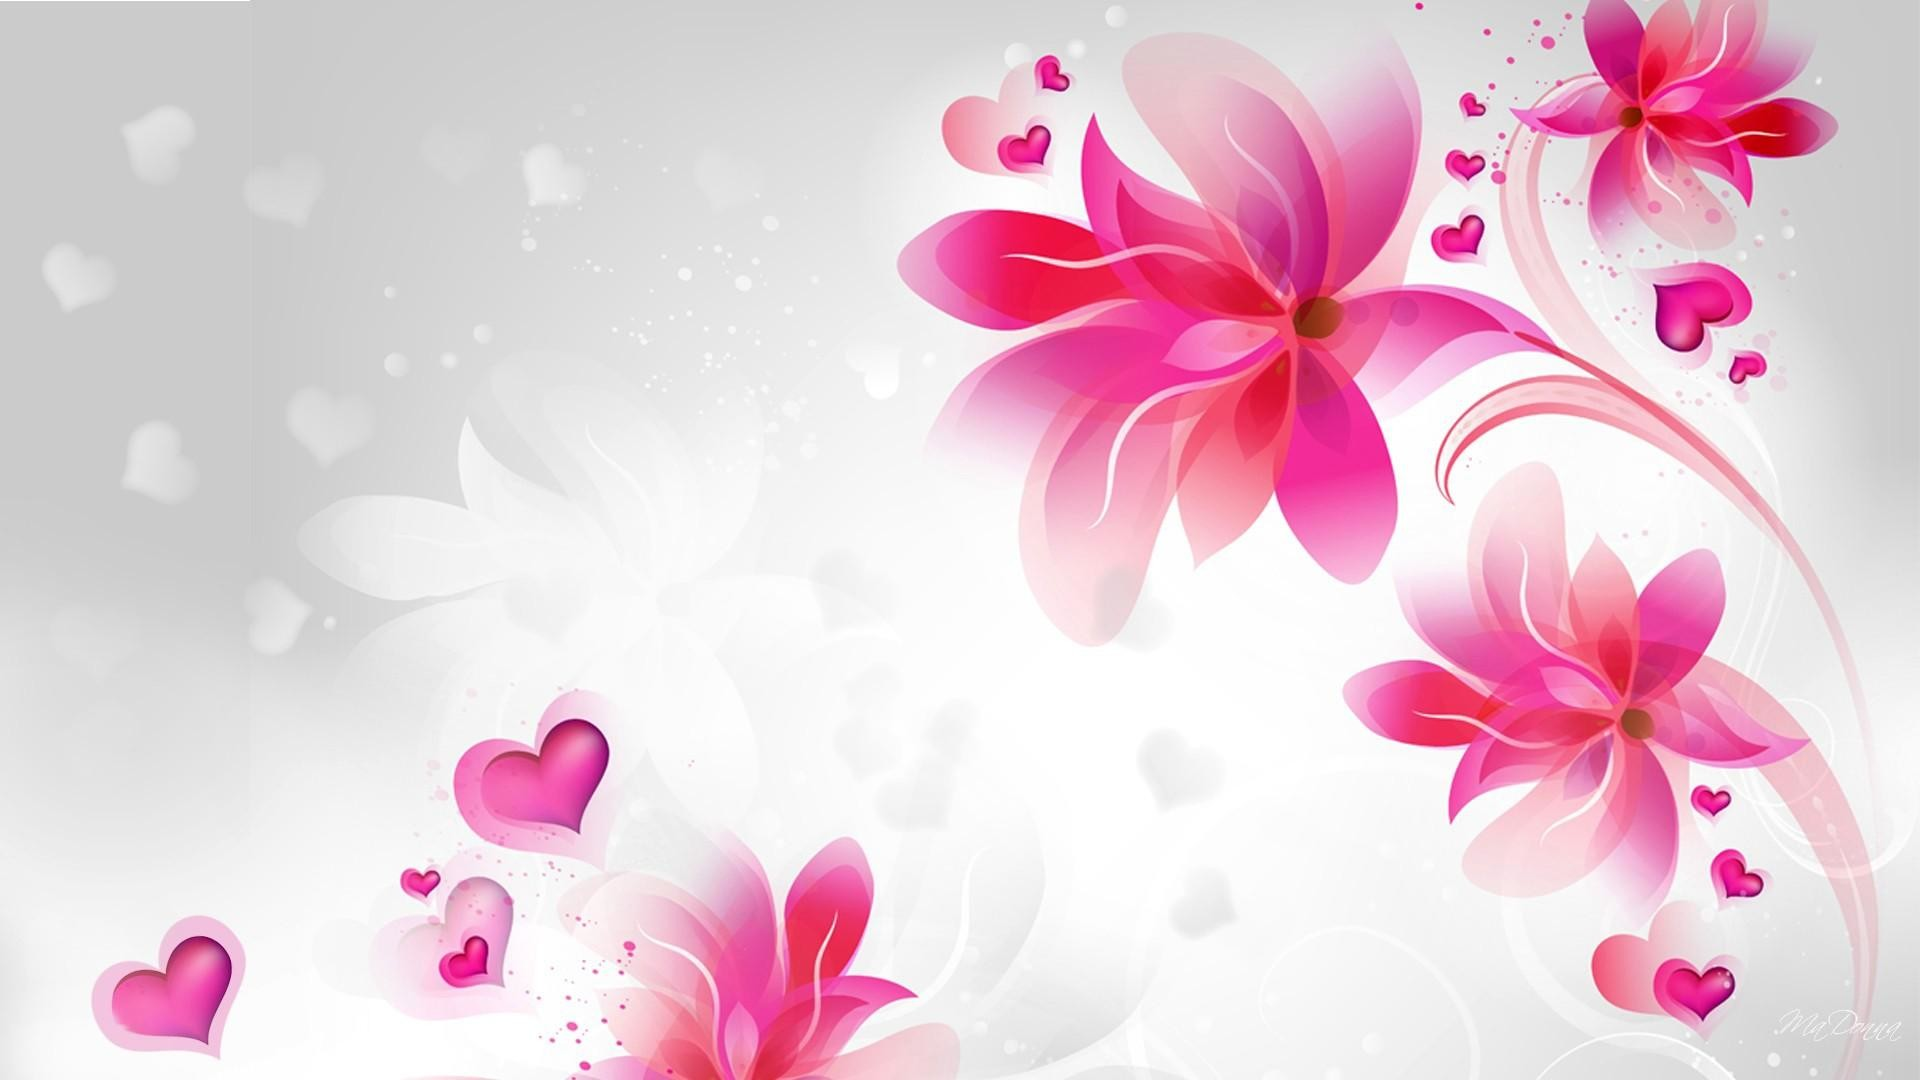 75 Abstract Flowers Wallpapers on WallpaperPlay 1920x1080